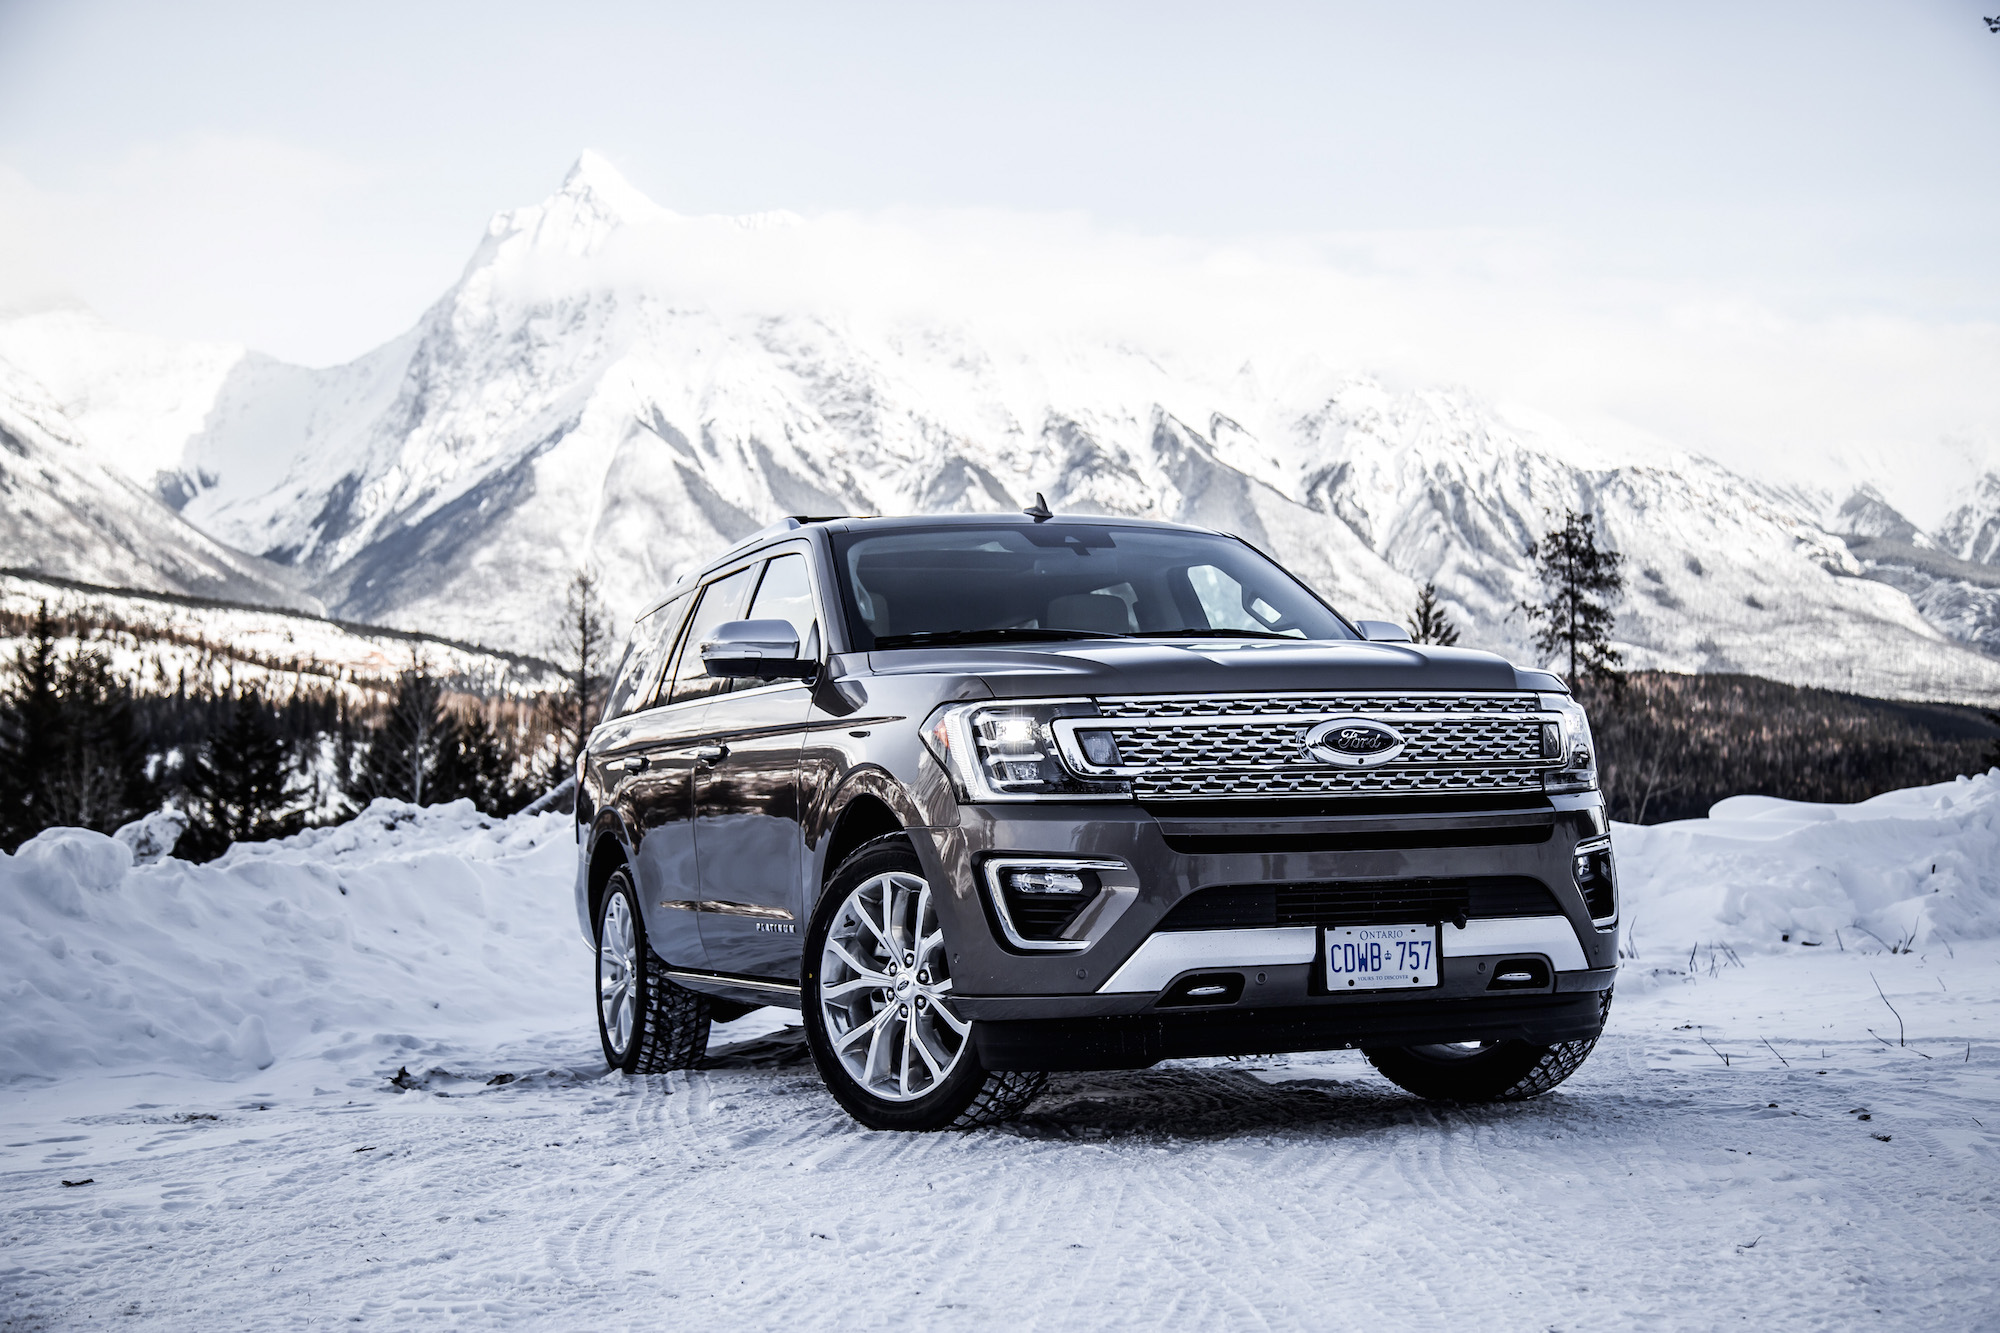 Ford Expedition Uphill Offroad Snow  Ford Expedition Platinum